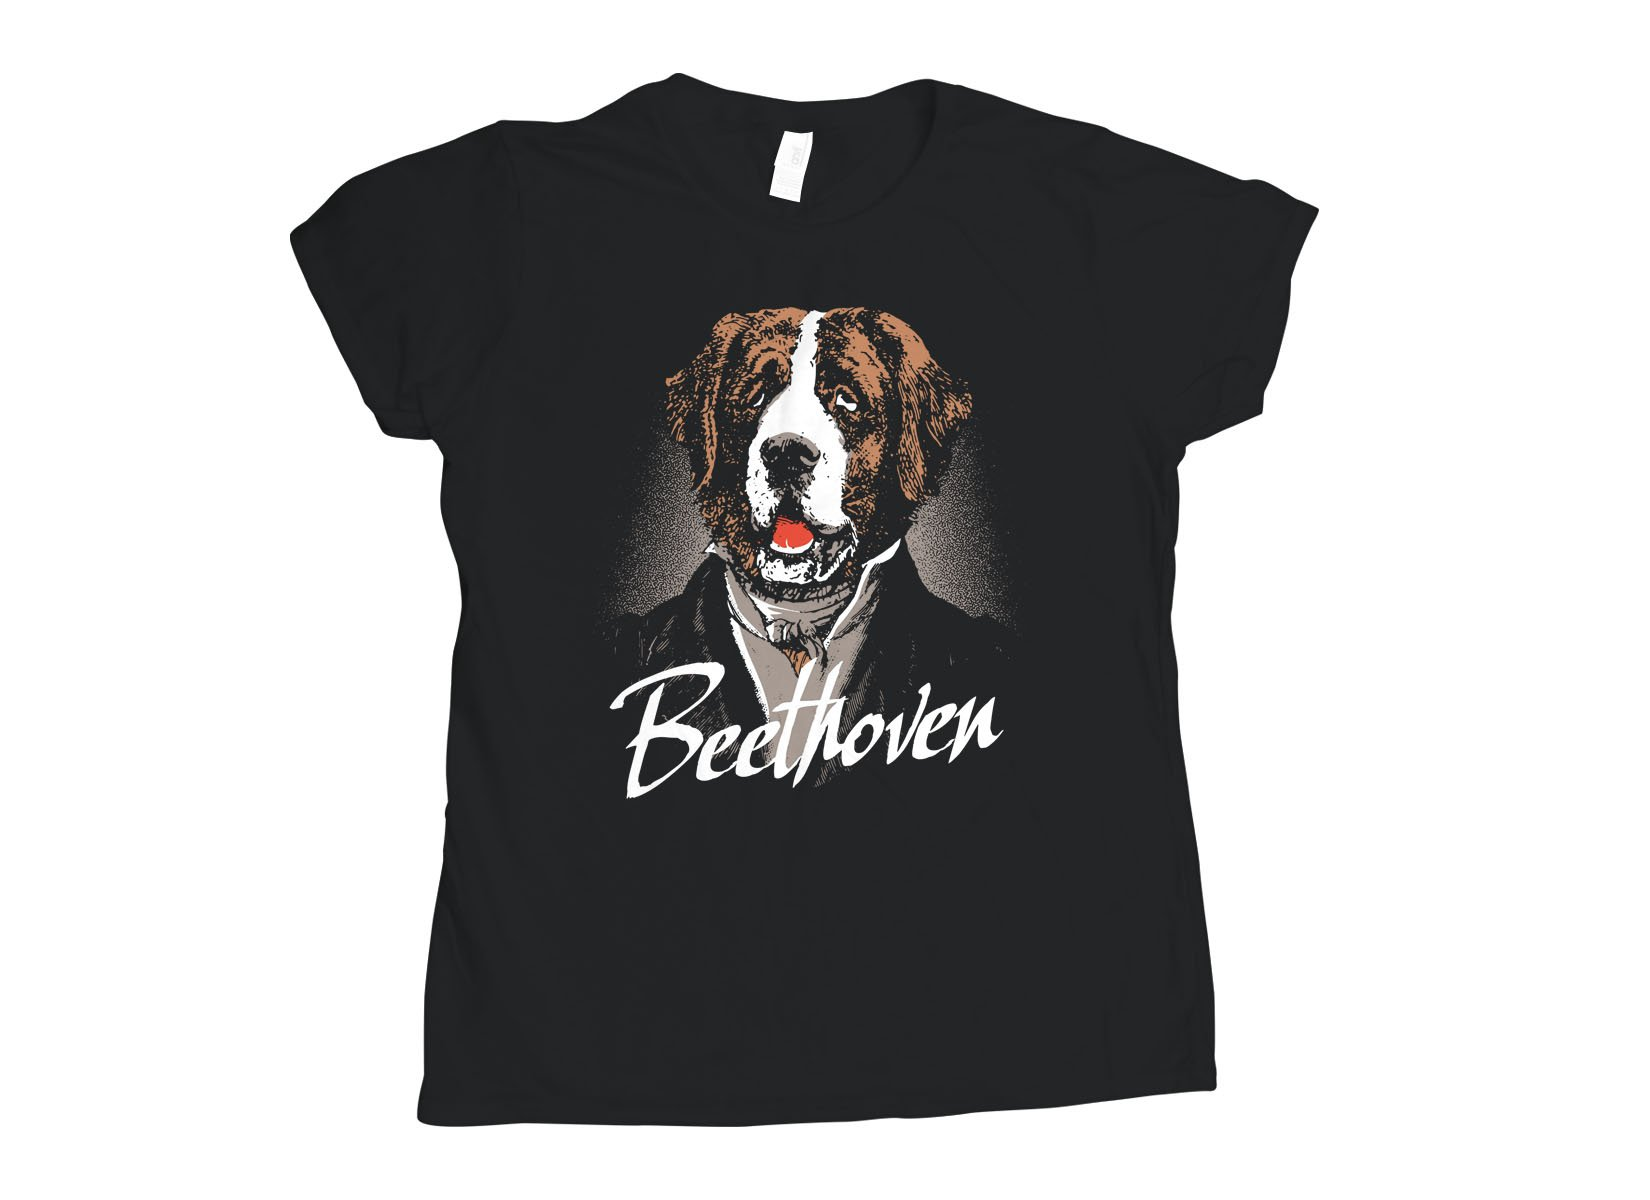 Beethoven on Womens T-Shirt